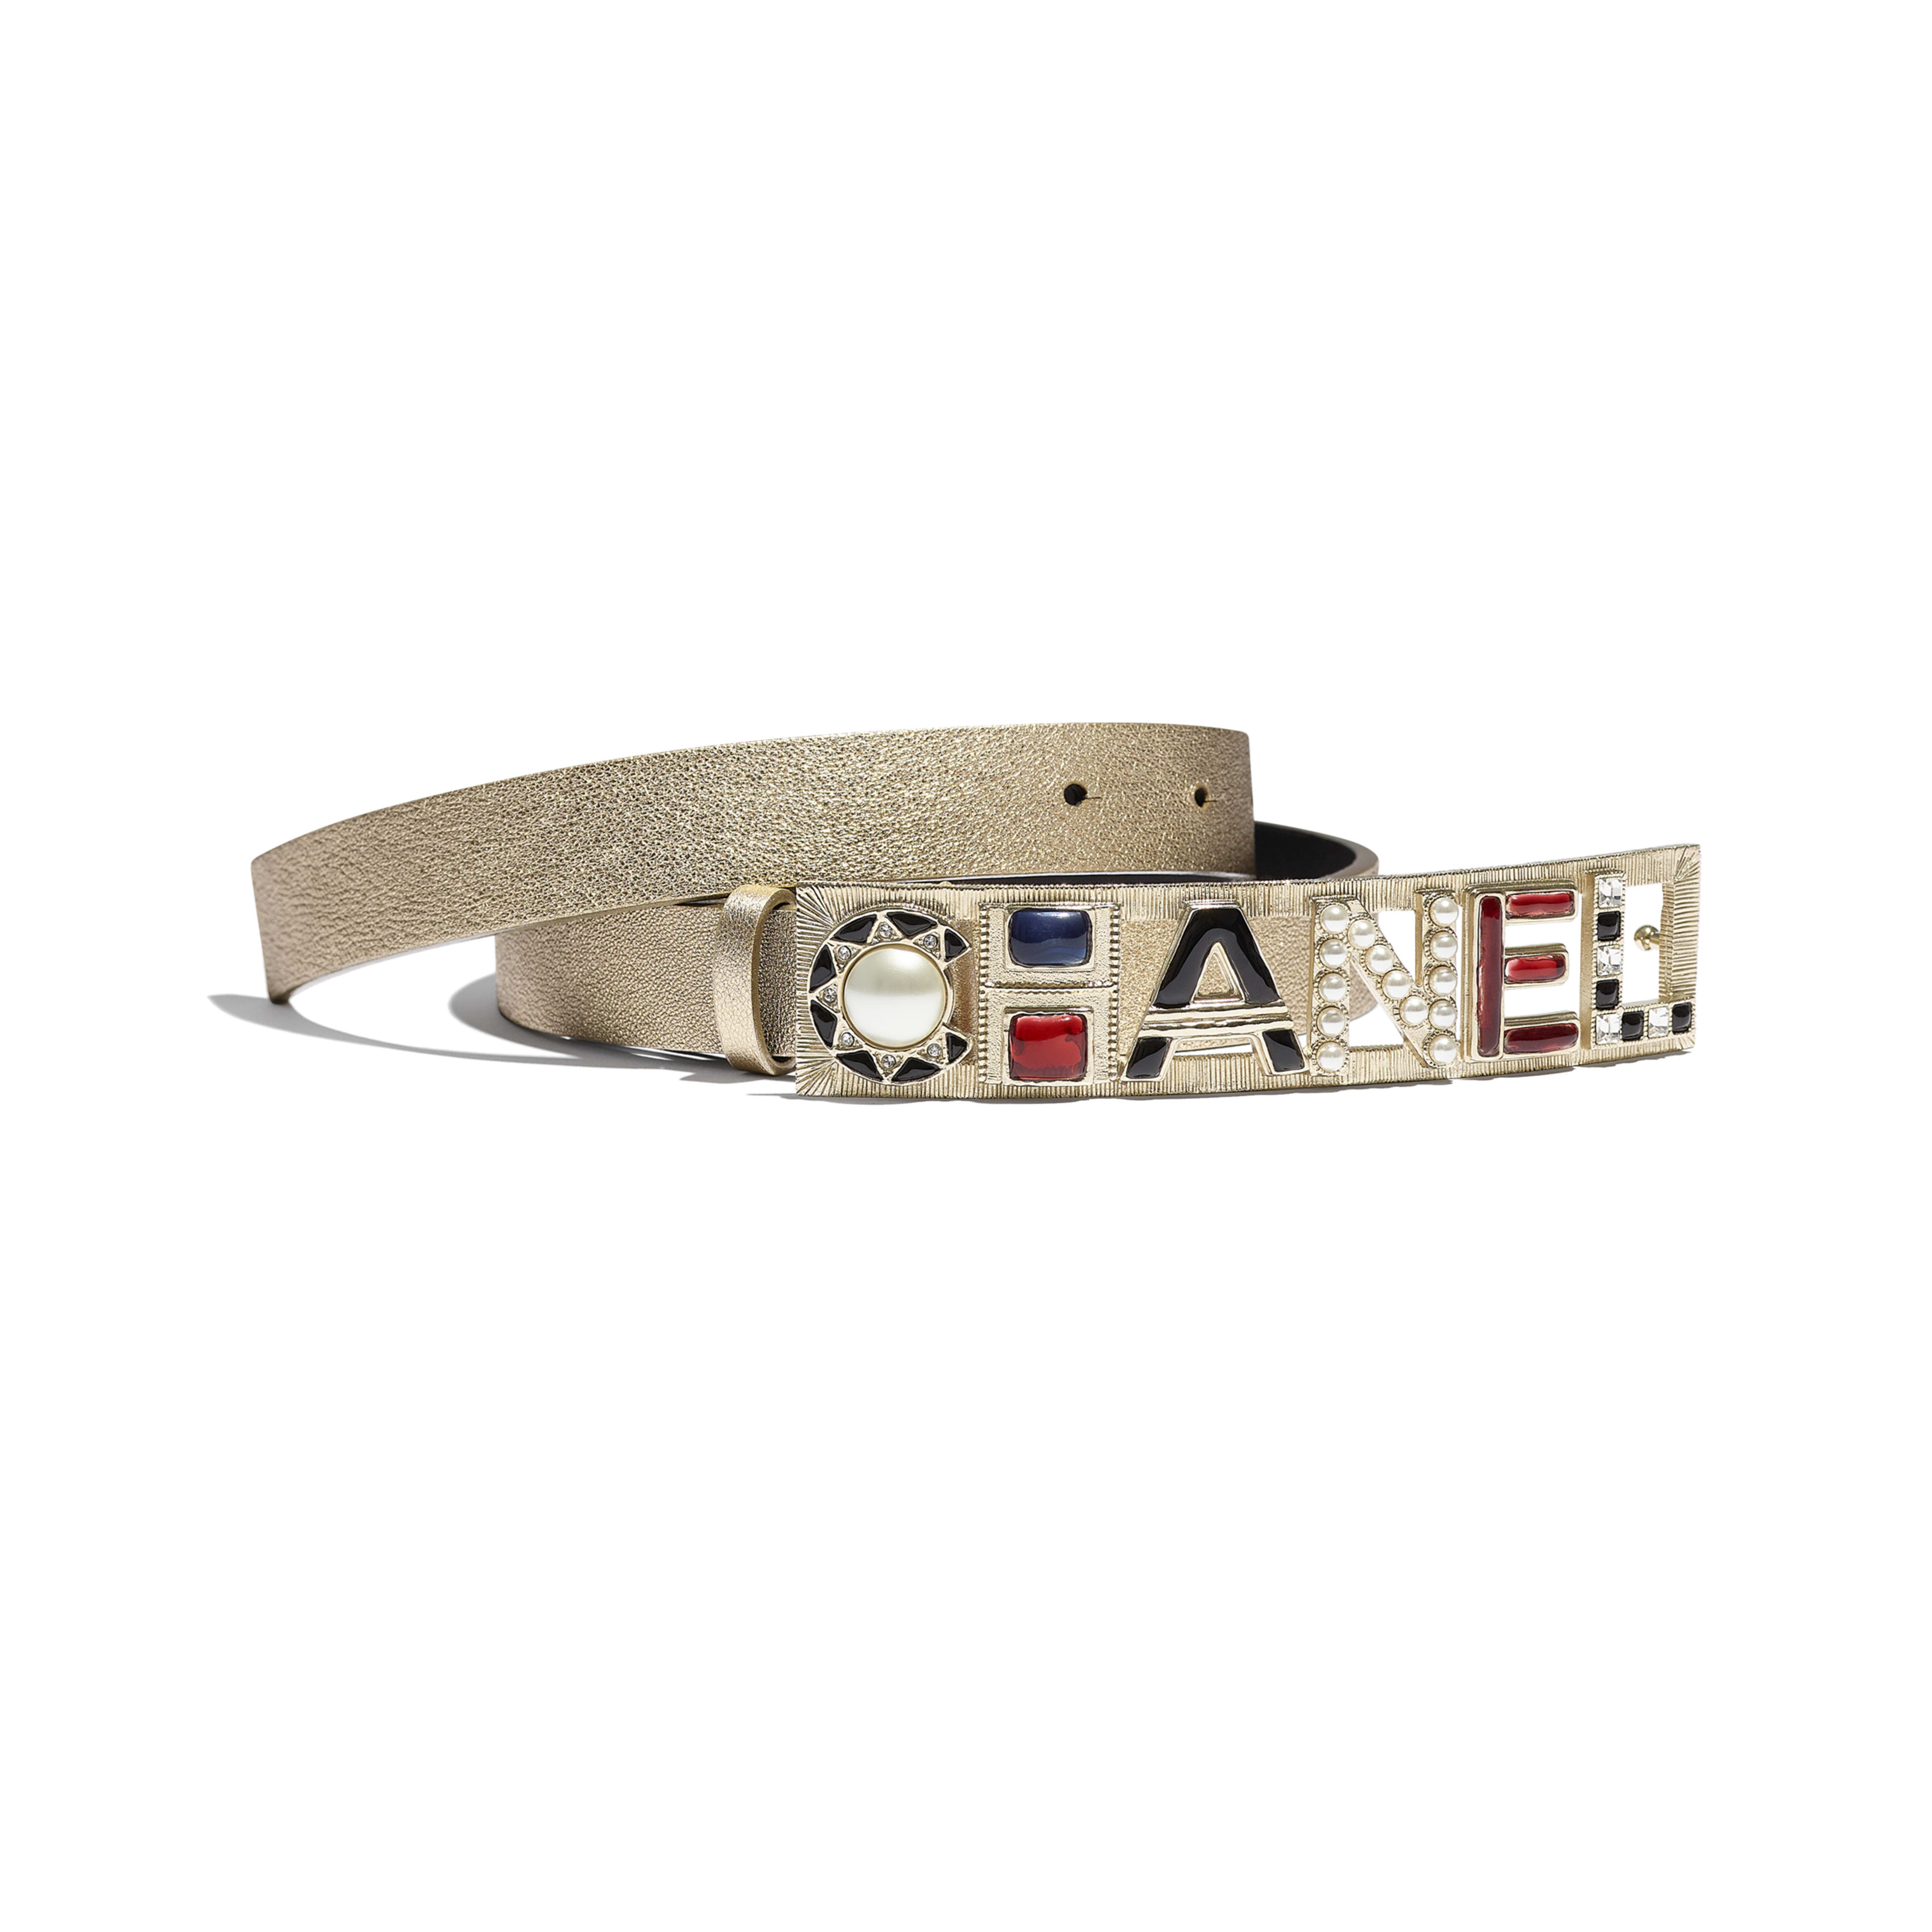 Belt - Gold & Red - Lambskin, Gold-Tone Metal, Glass, Strass & Resin - Default view - see full sized version